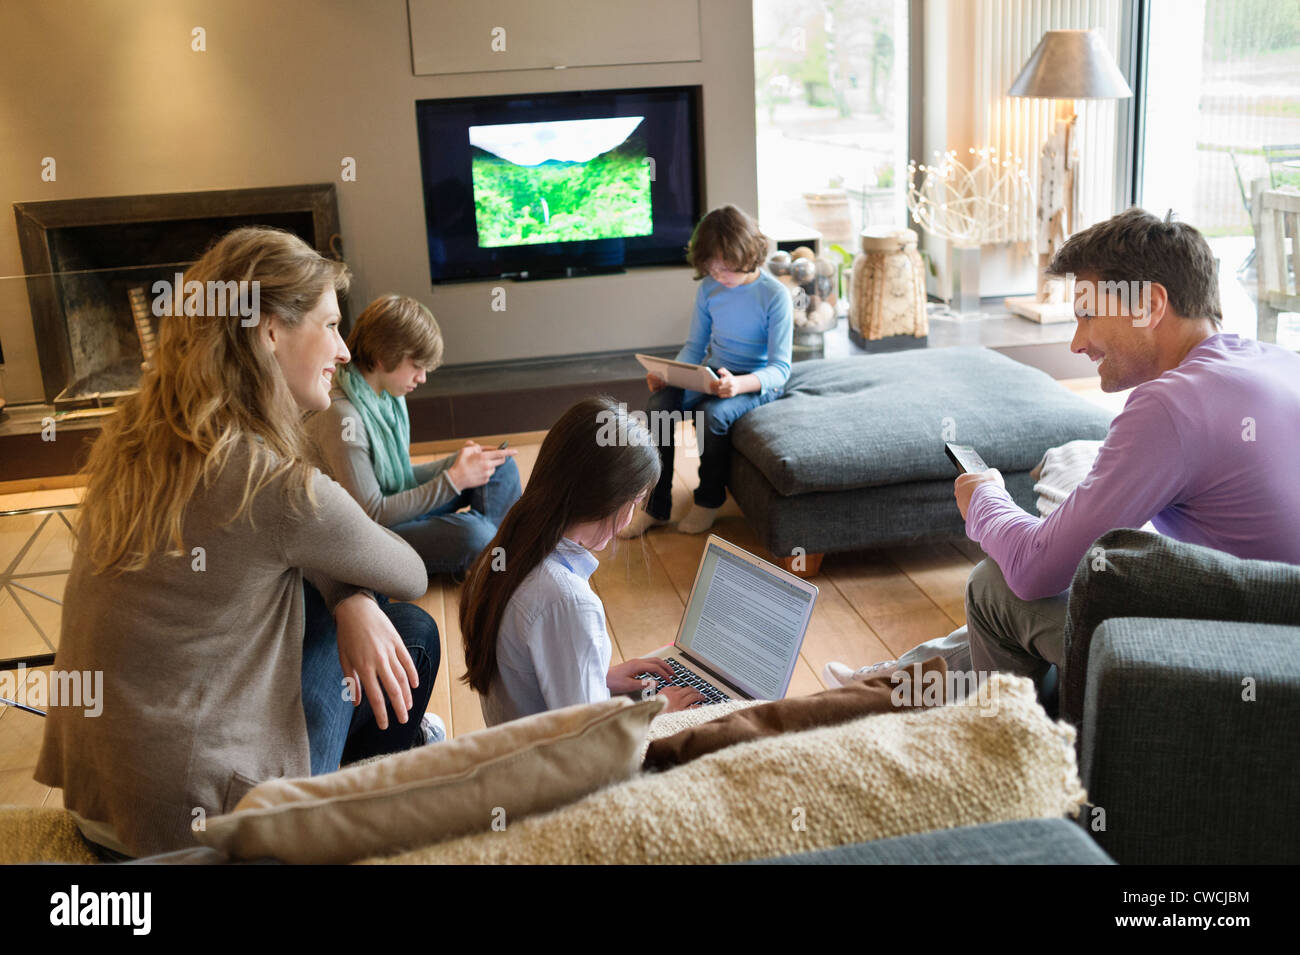 living room family family using electronic gadgets in a living room stock 11420